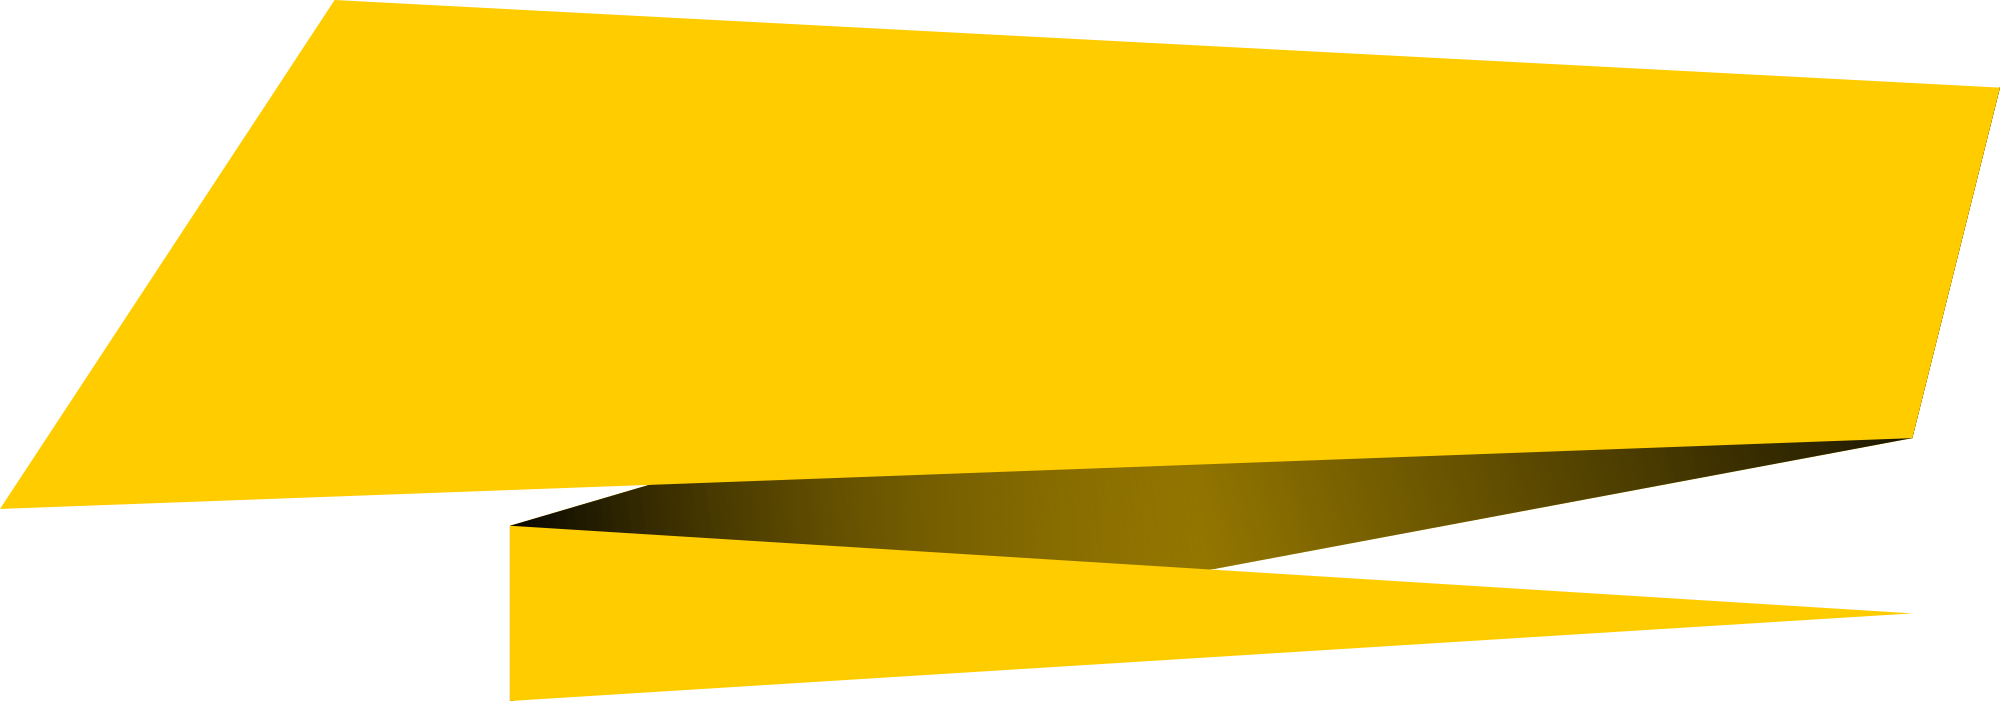 Yellow Banner Png Background Image Png Arts